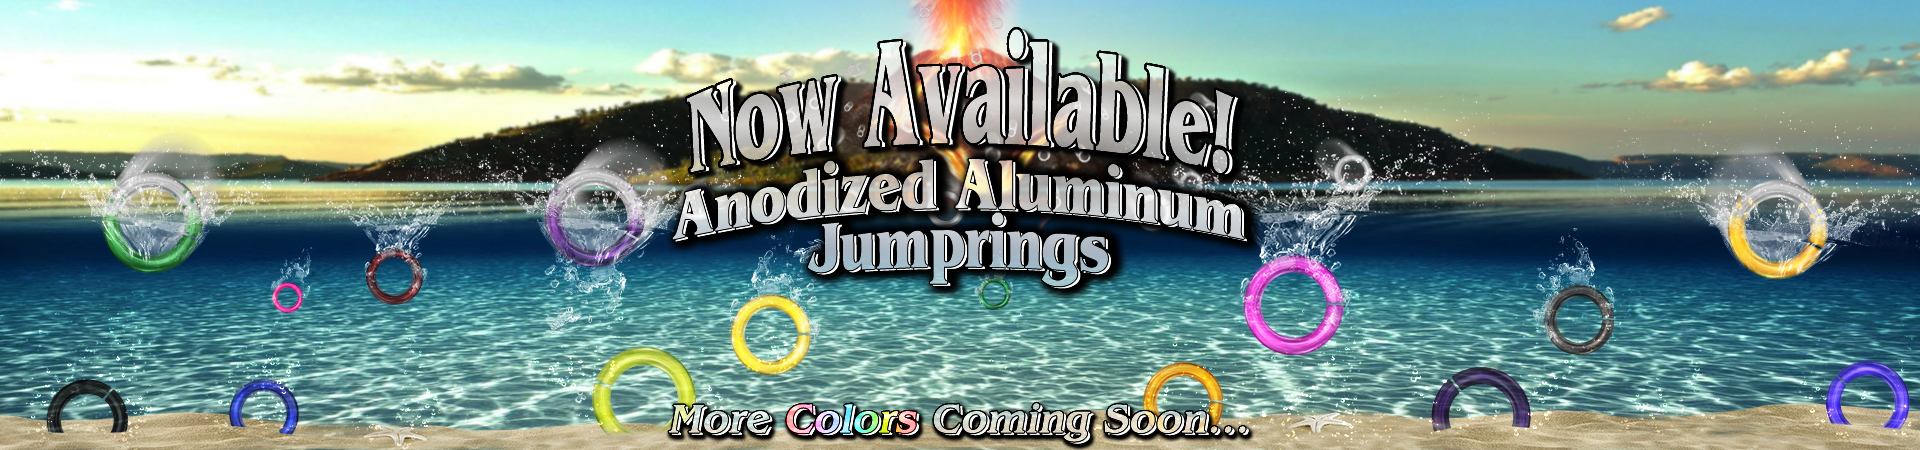 Anodized Aluminum Jumprings Now Availible